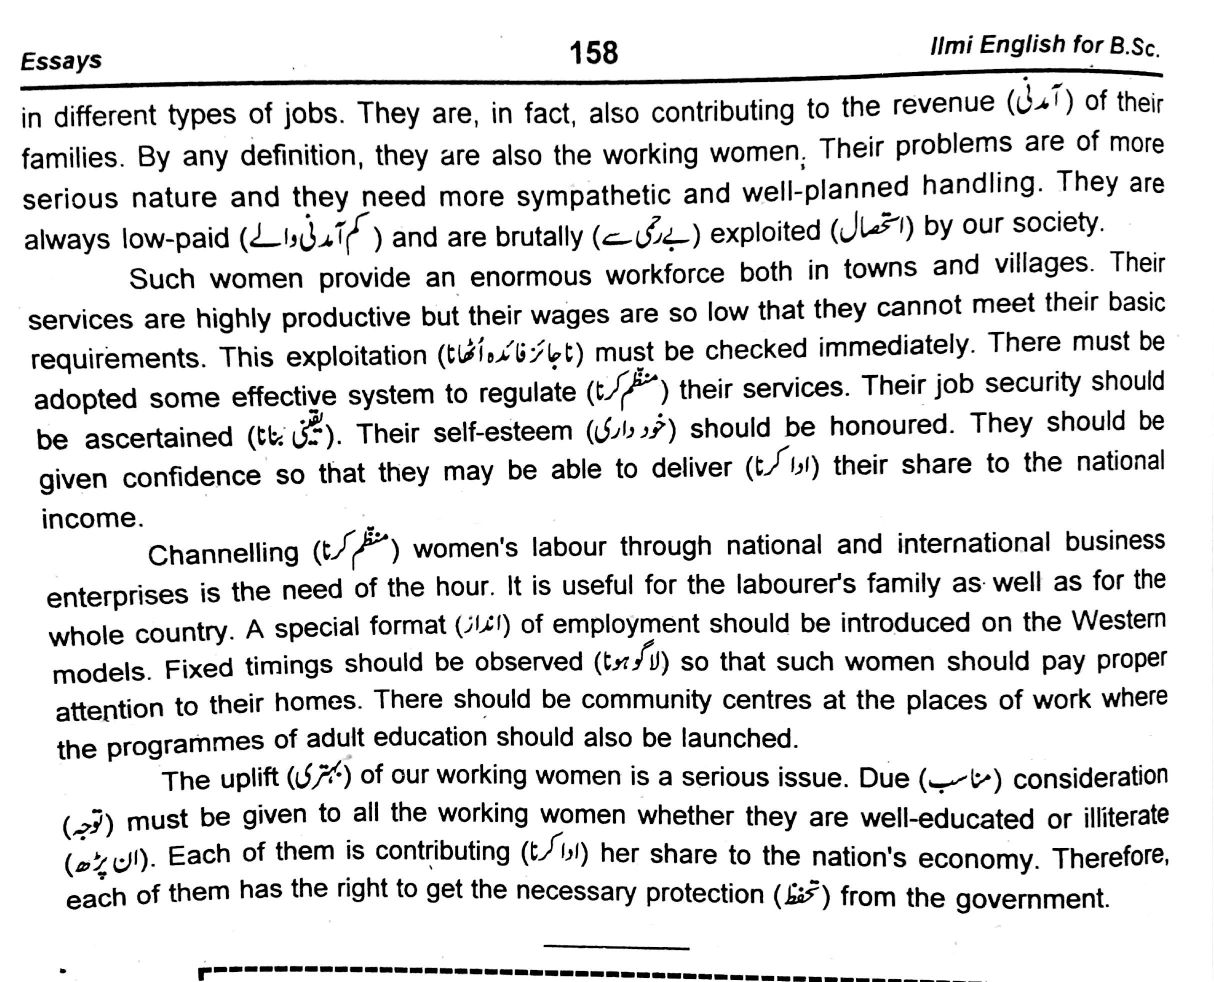 essay about problems of working women